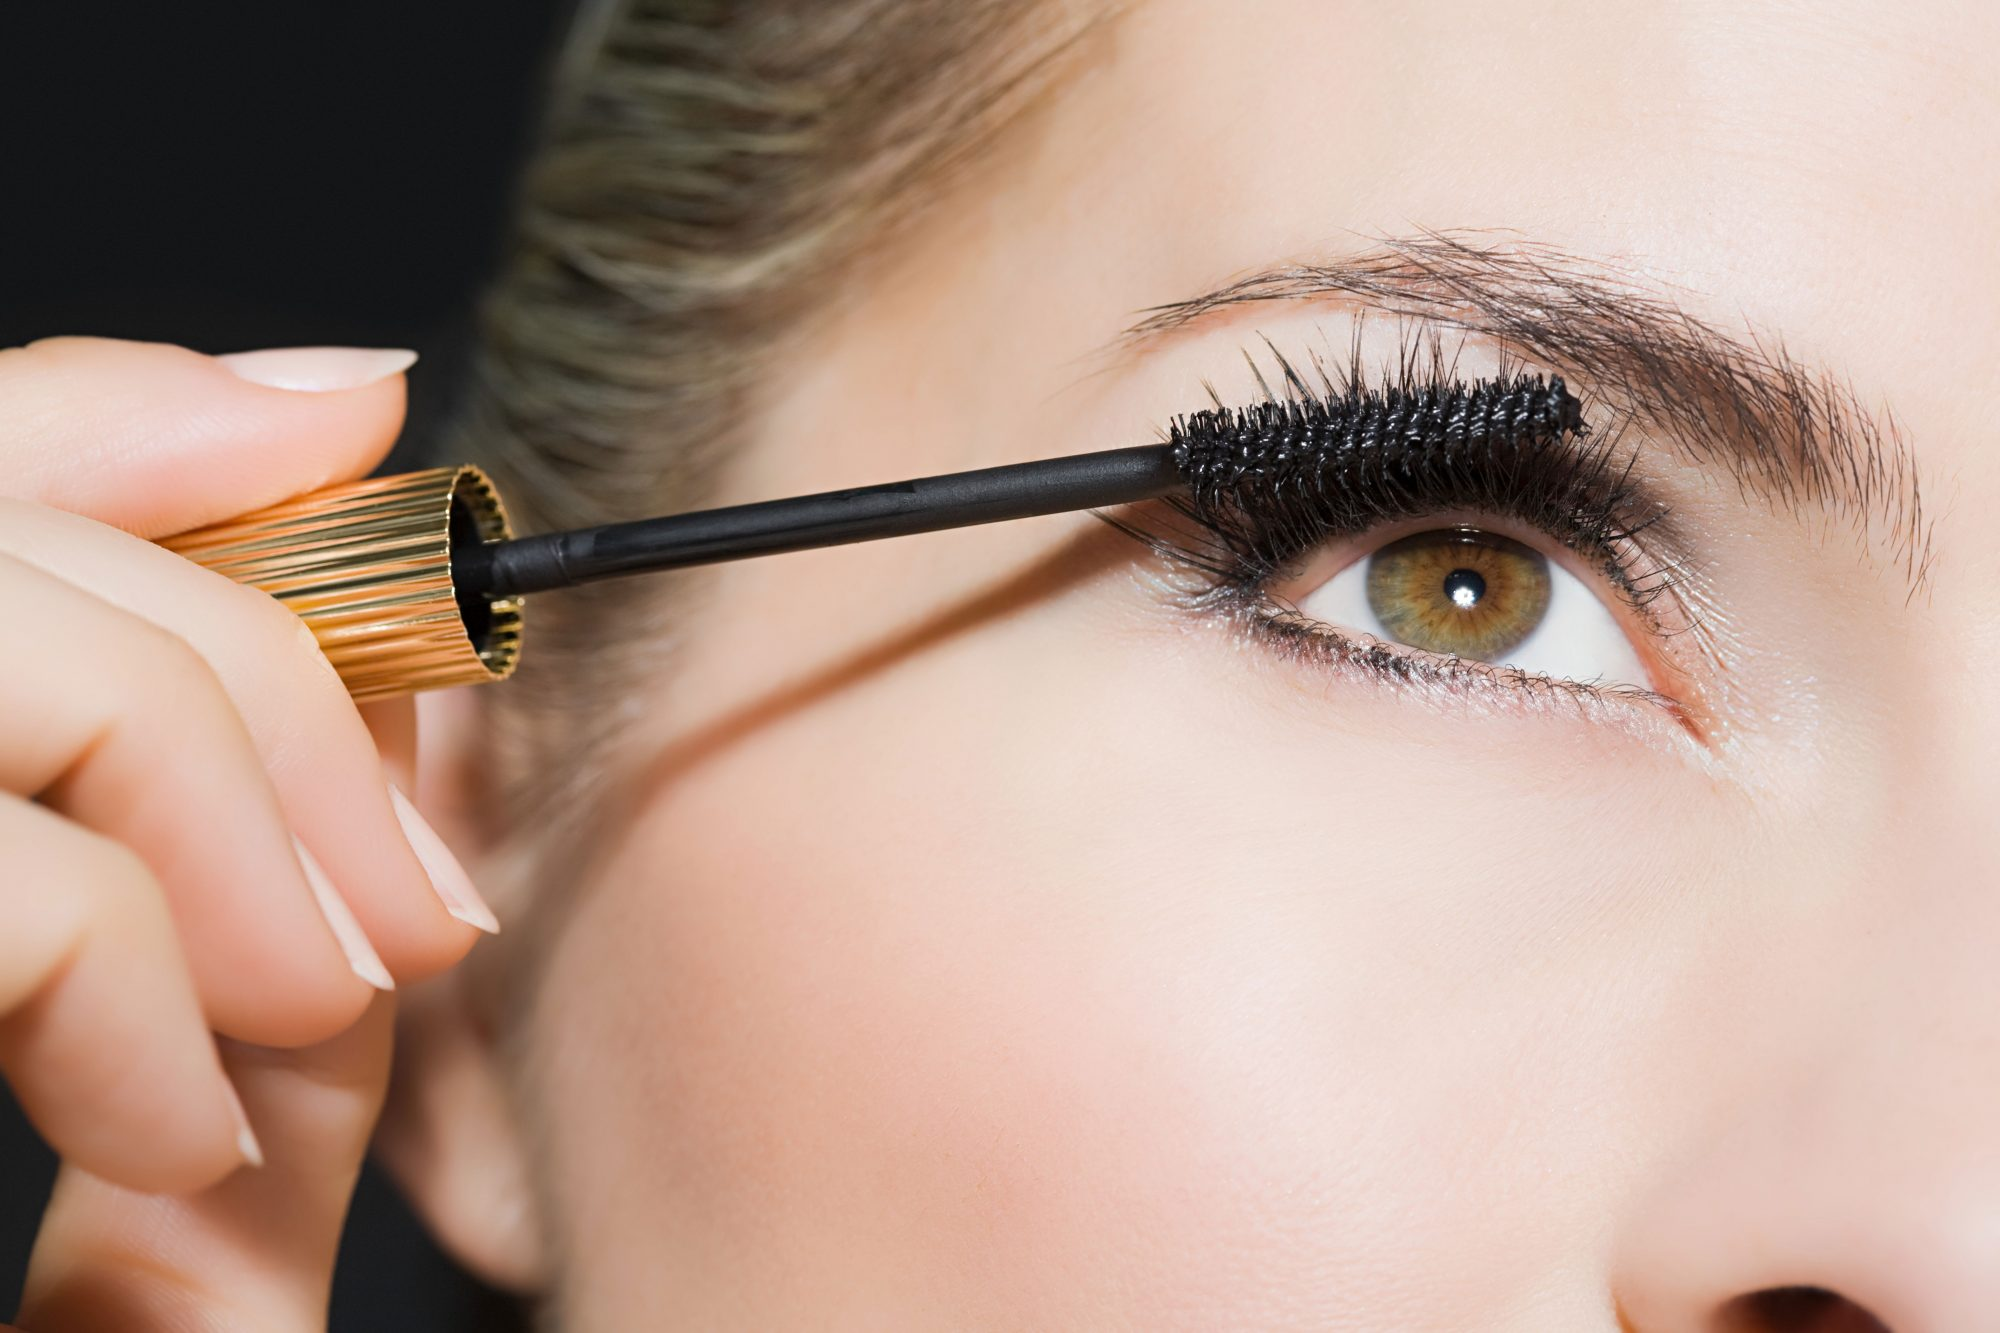 Woman with Green Eyes Applying Mascara